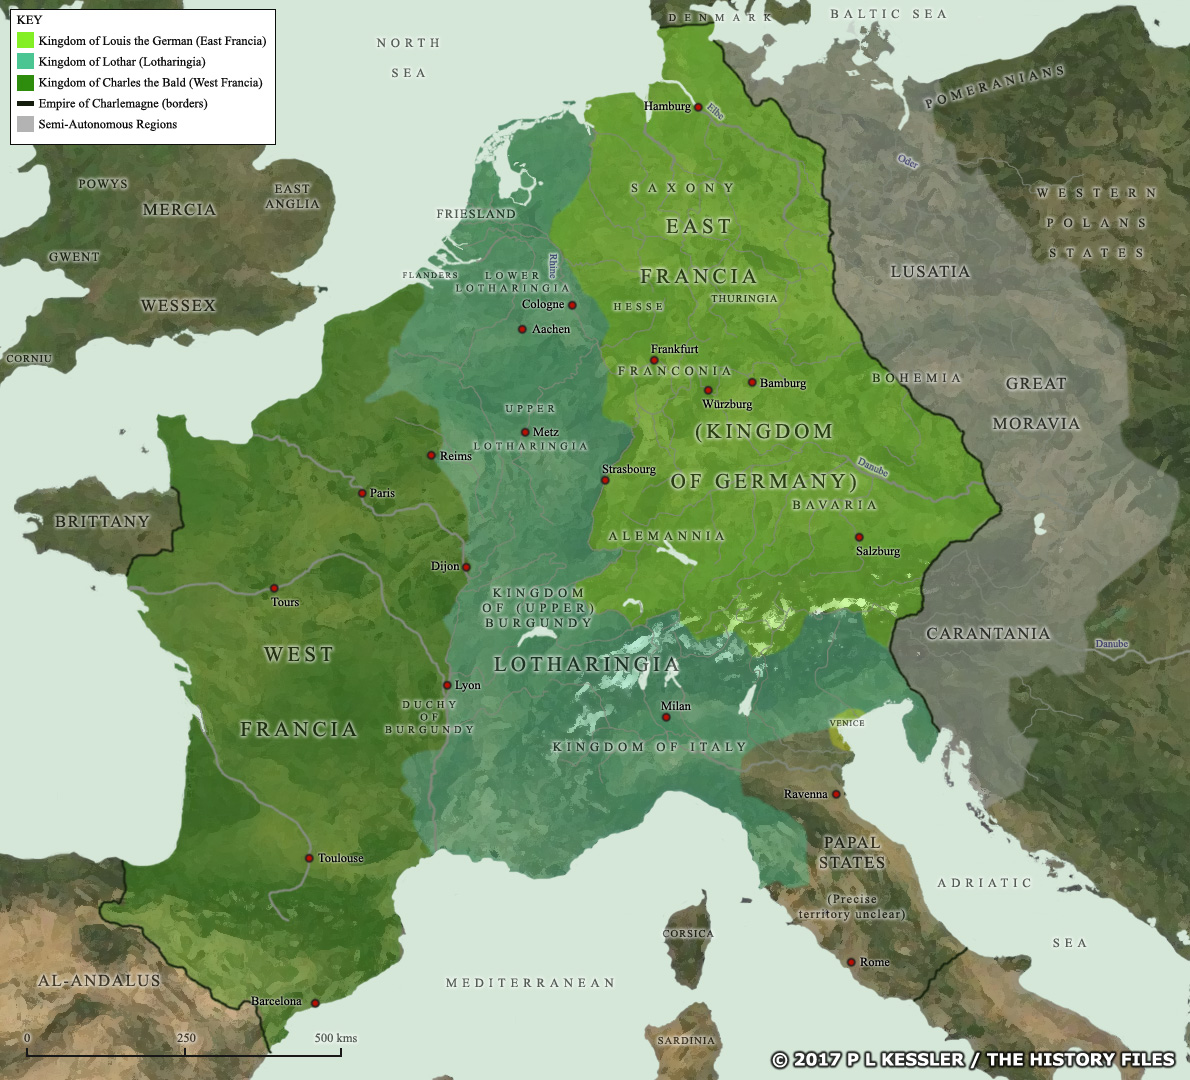 Kingdoms of France Lotharingia Lorraine